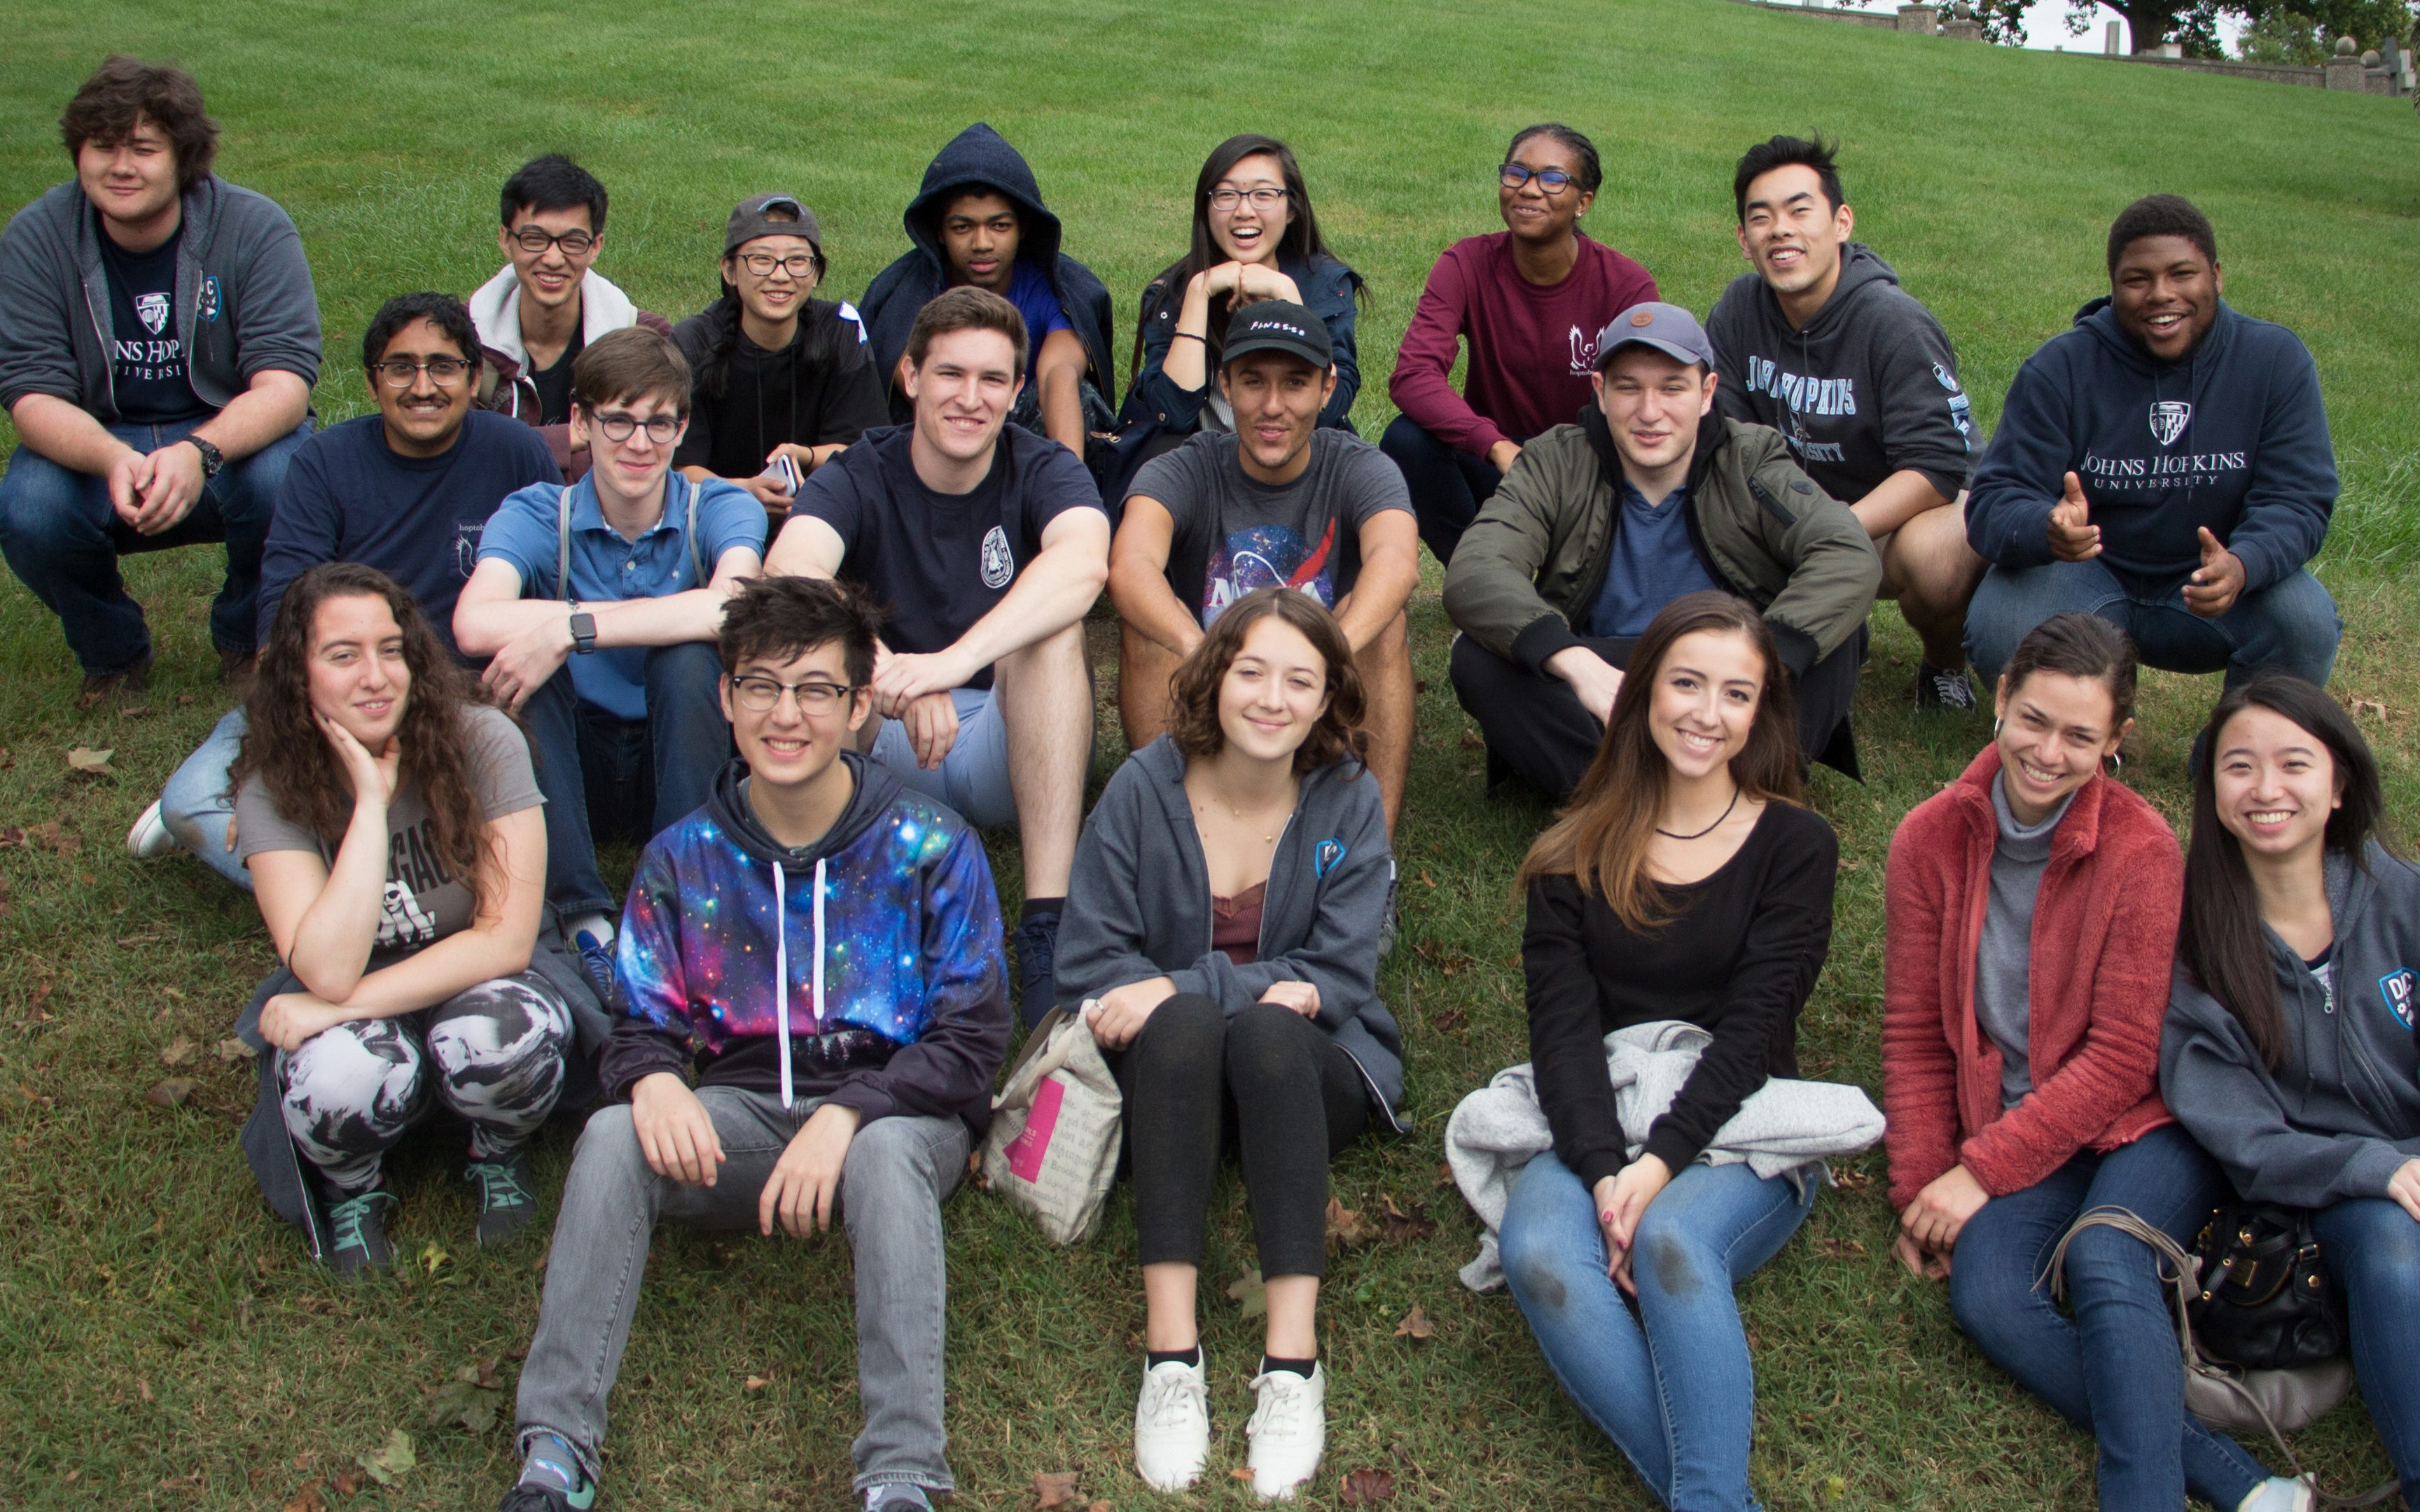 A group of students sit on the lawn and smile for a picture.